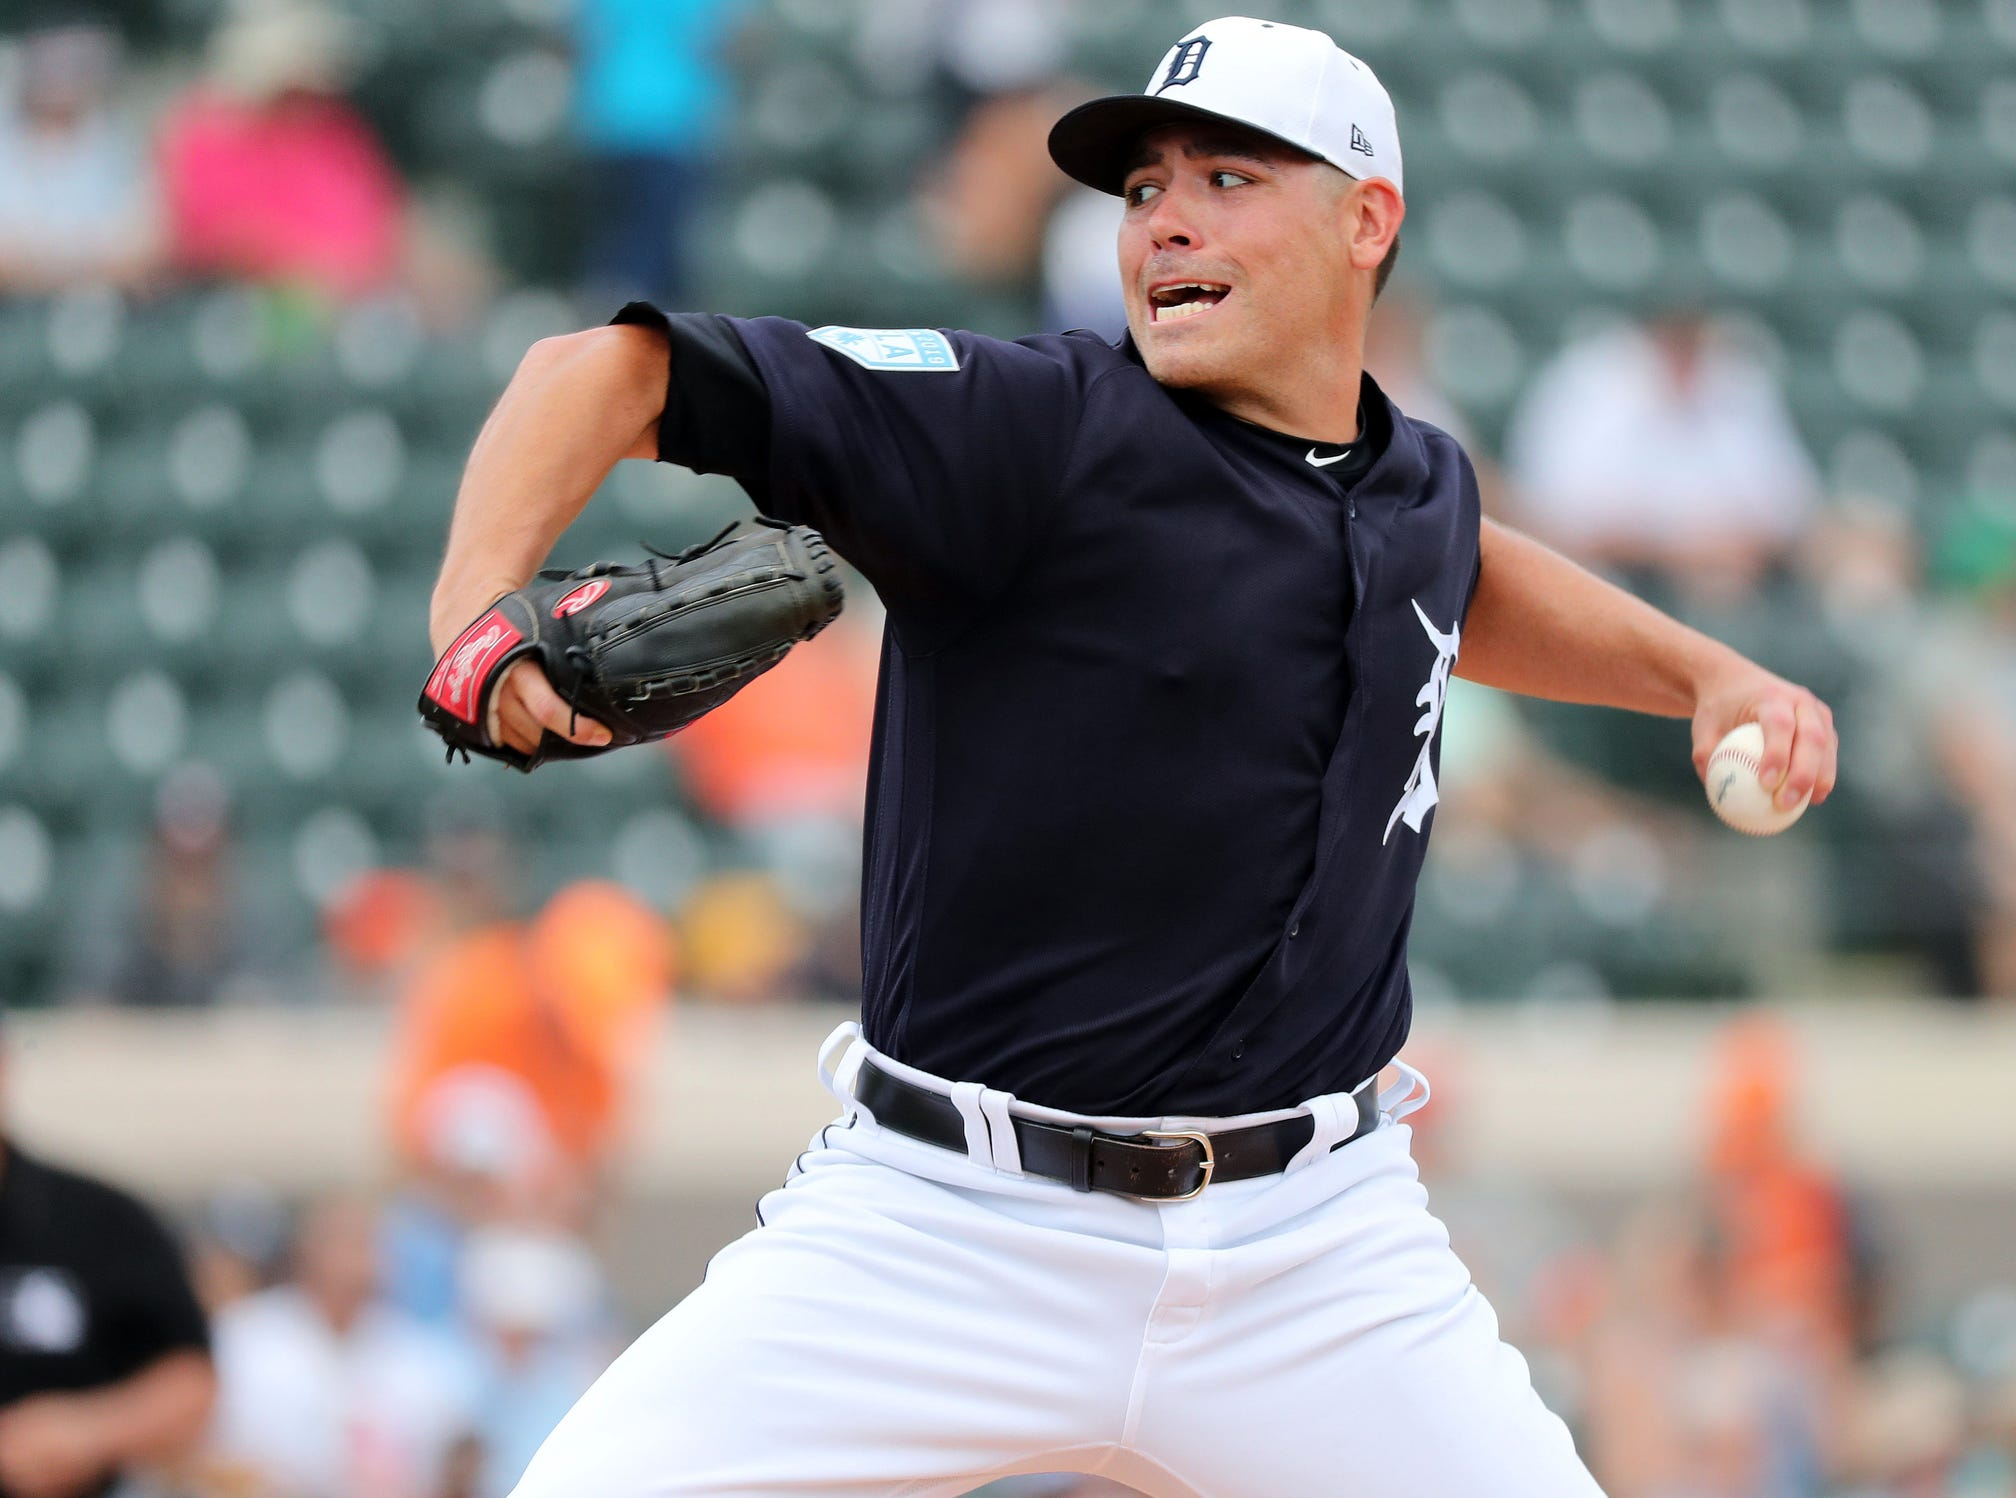 Tigers pitcher Matt Moore throws a pitch during the first inning against the New York Yankees on Sunday, March 10, 2019, at Joker Marchant Stadium.